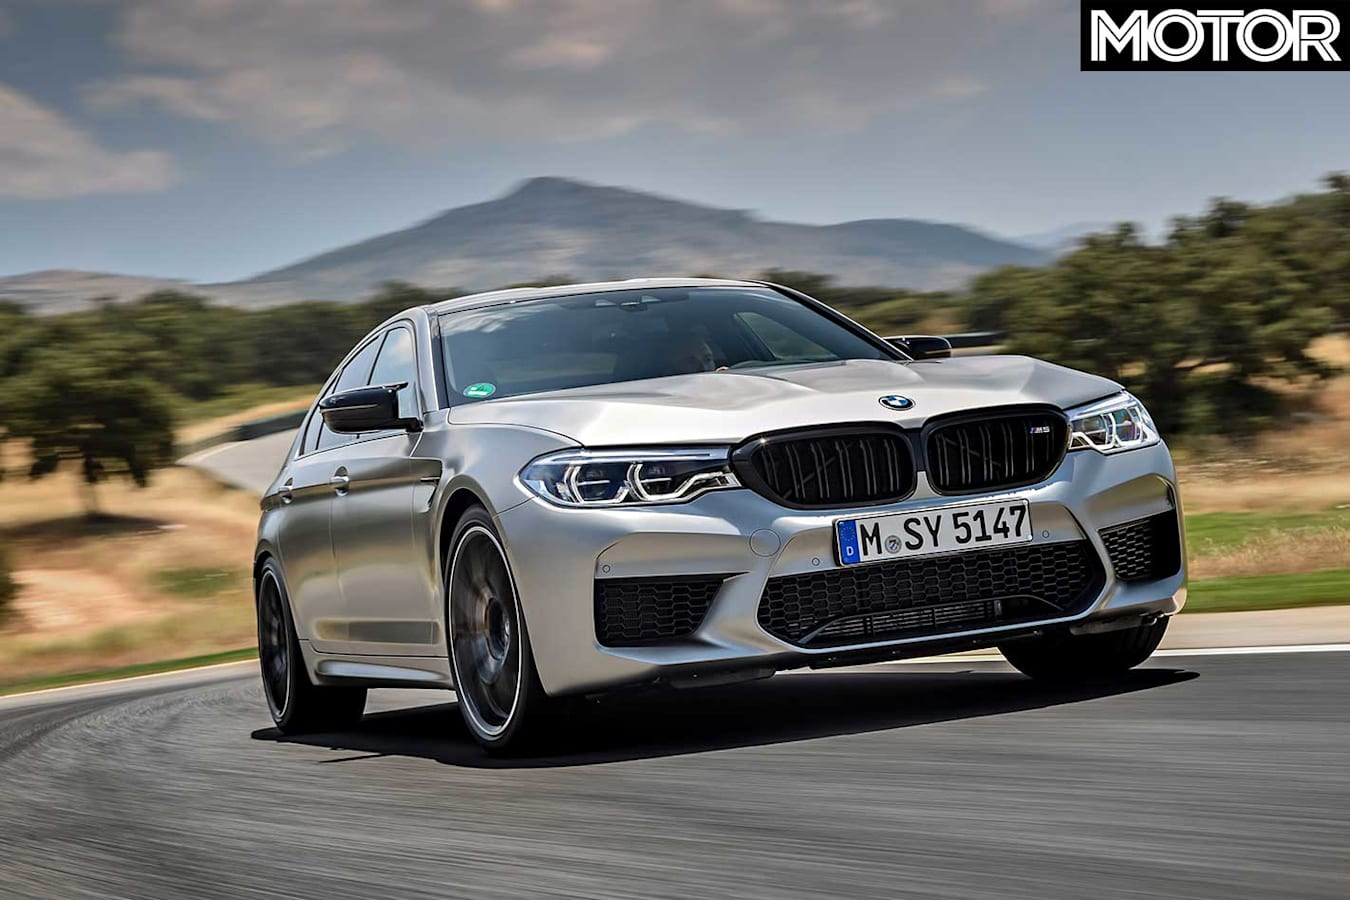 MOTOR PCOTY 2019 BMW M 5 Competition Jpg